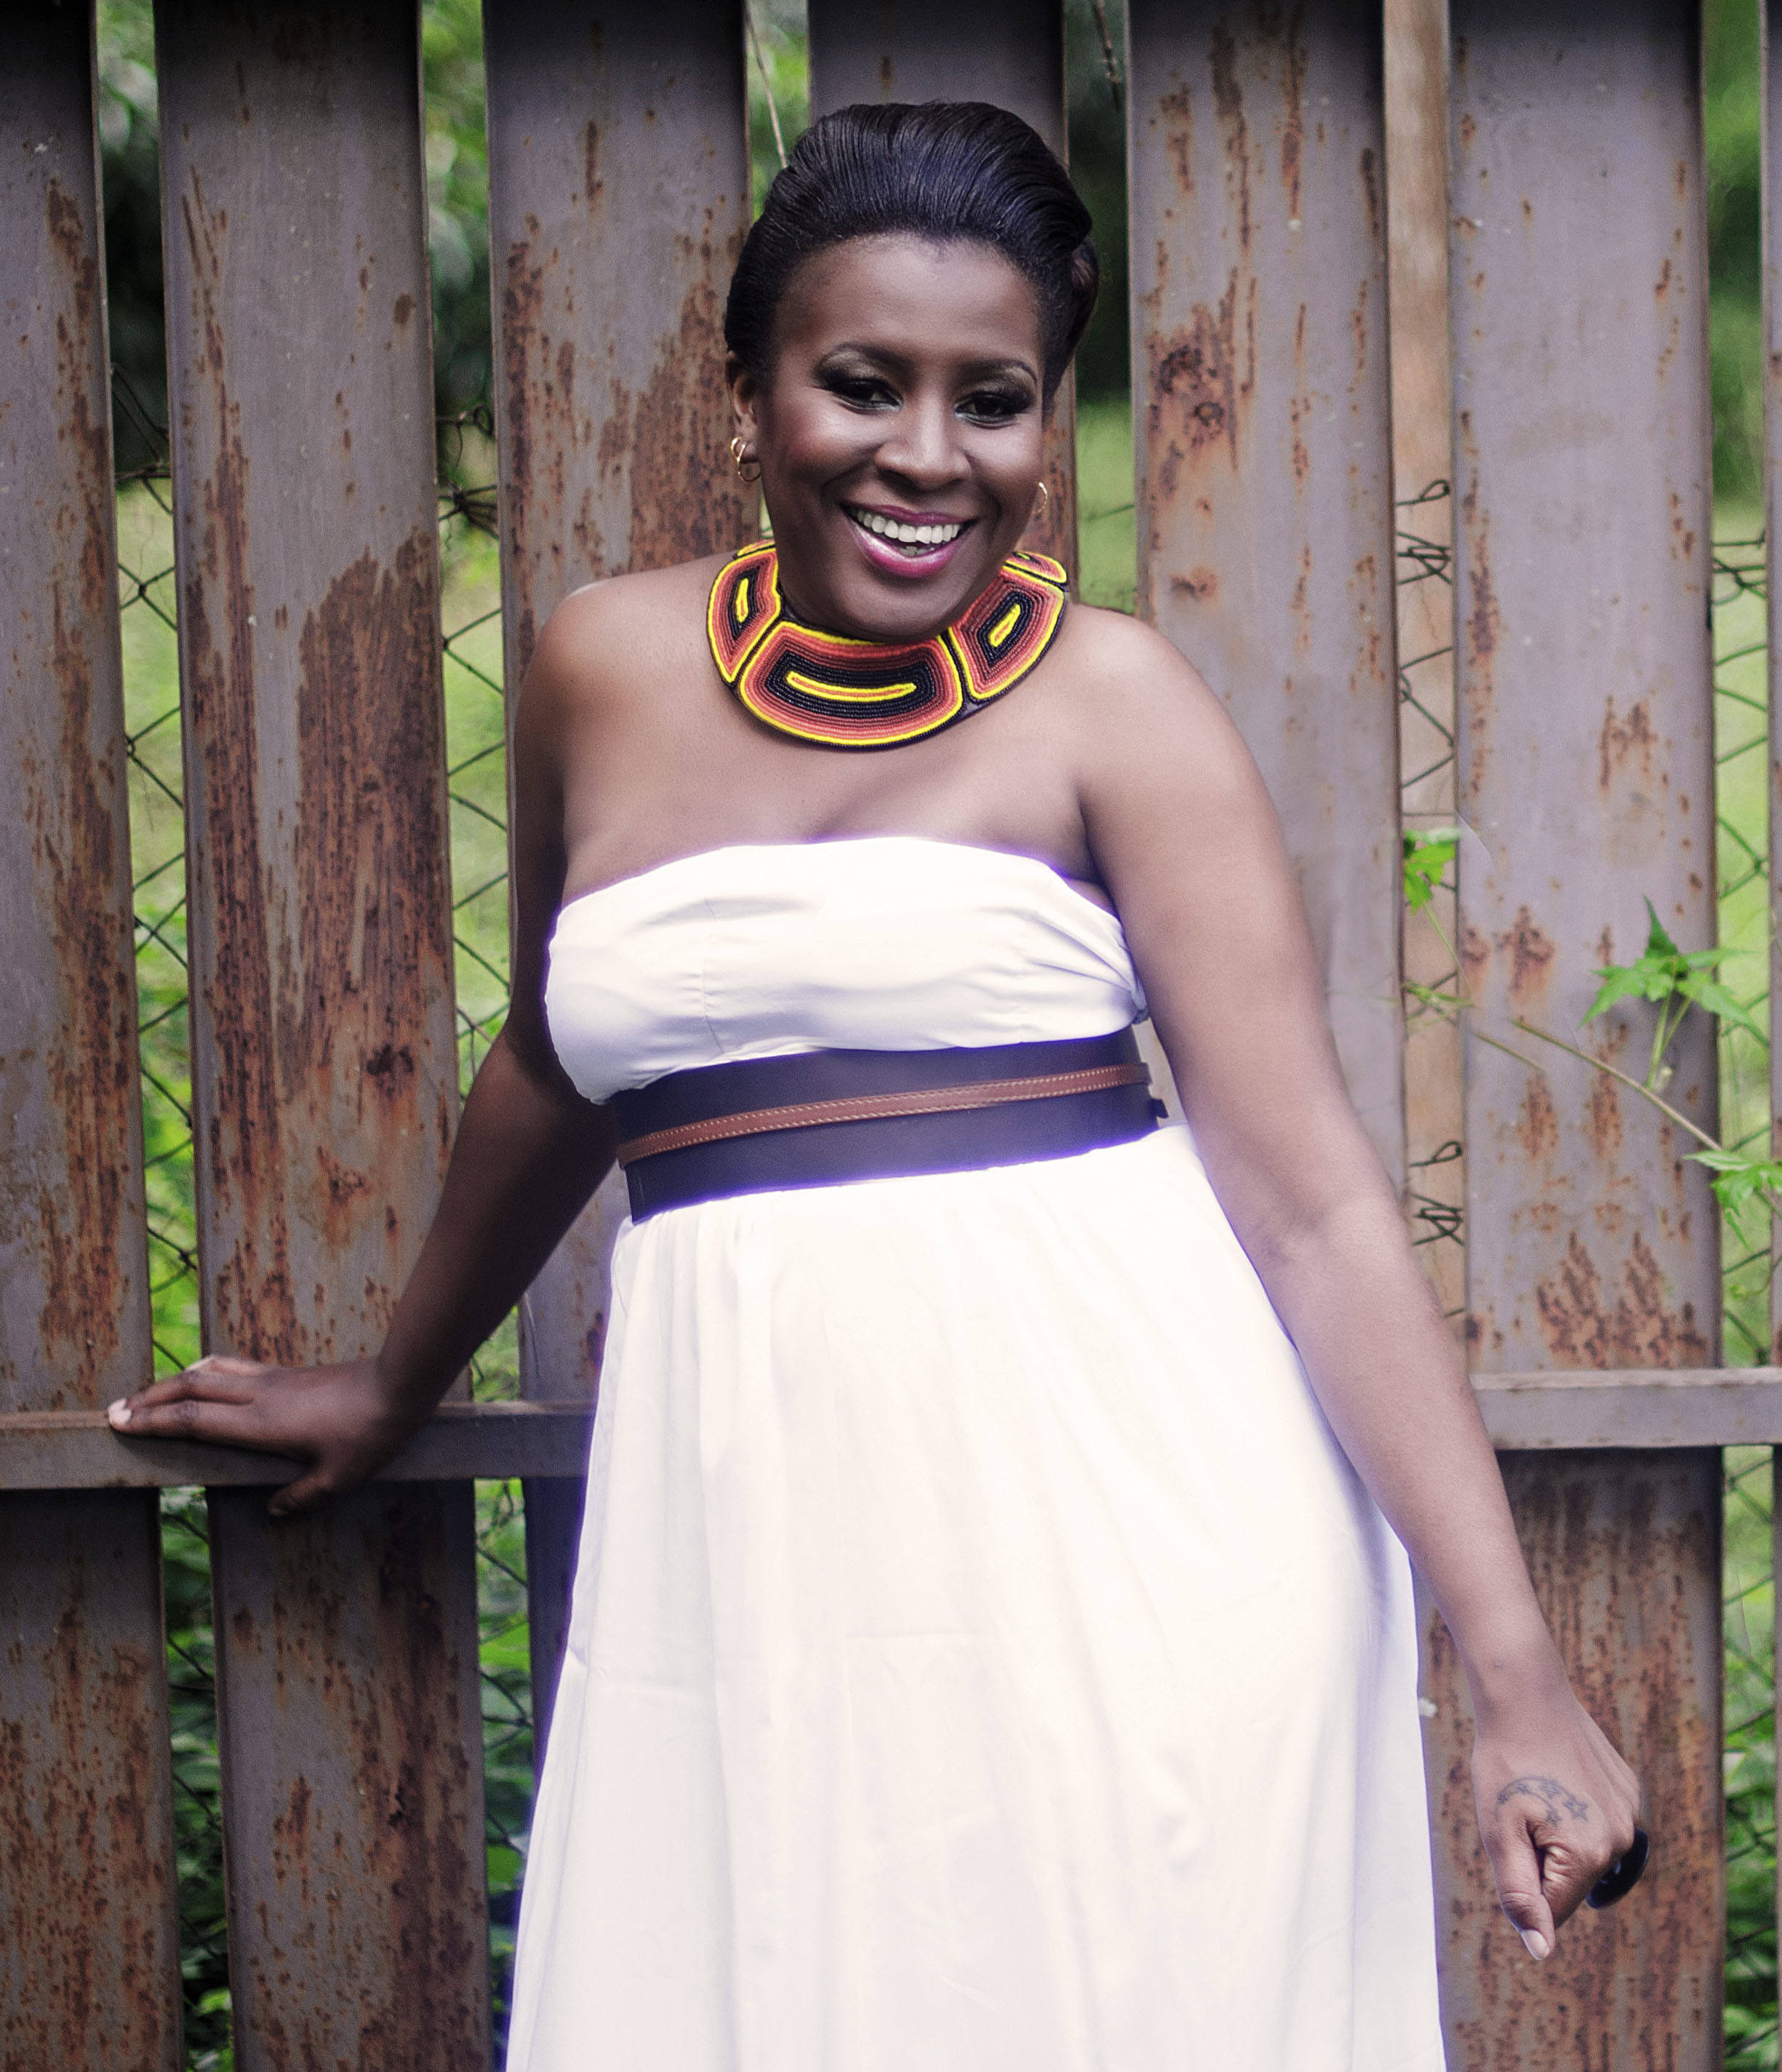 ATEMI - Wamechoka! Celebrities who are tired of false 'pregnancy' stories